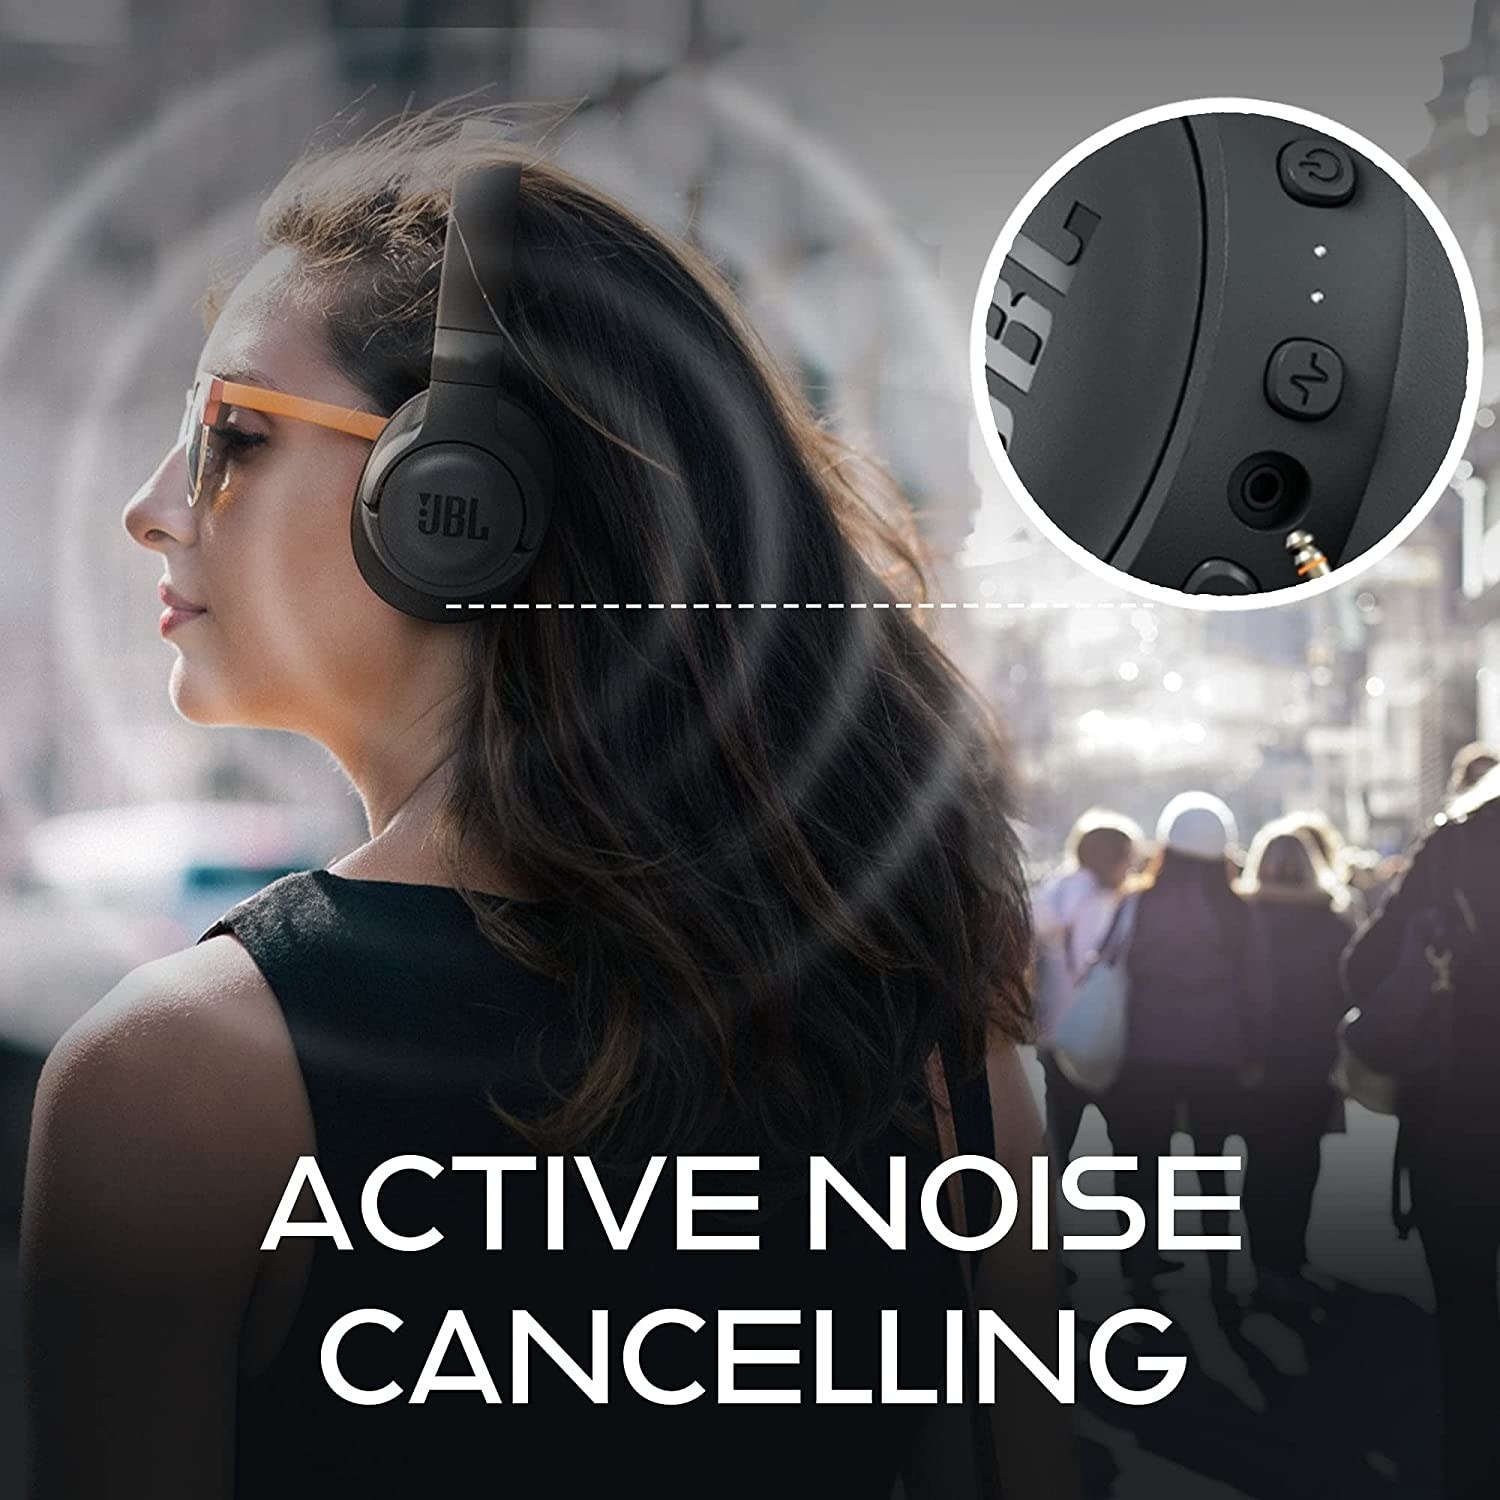 A person wearing the noise cancelling headphones